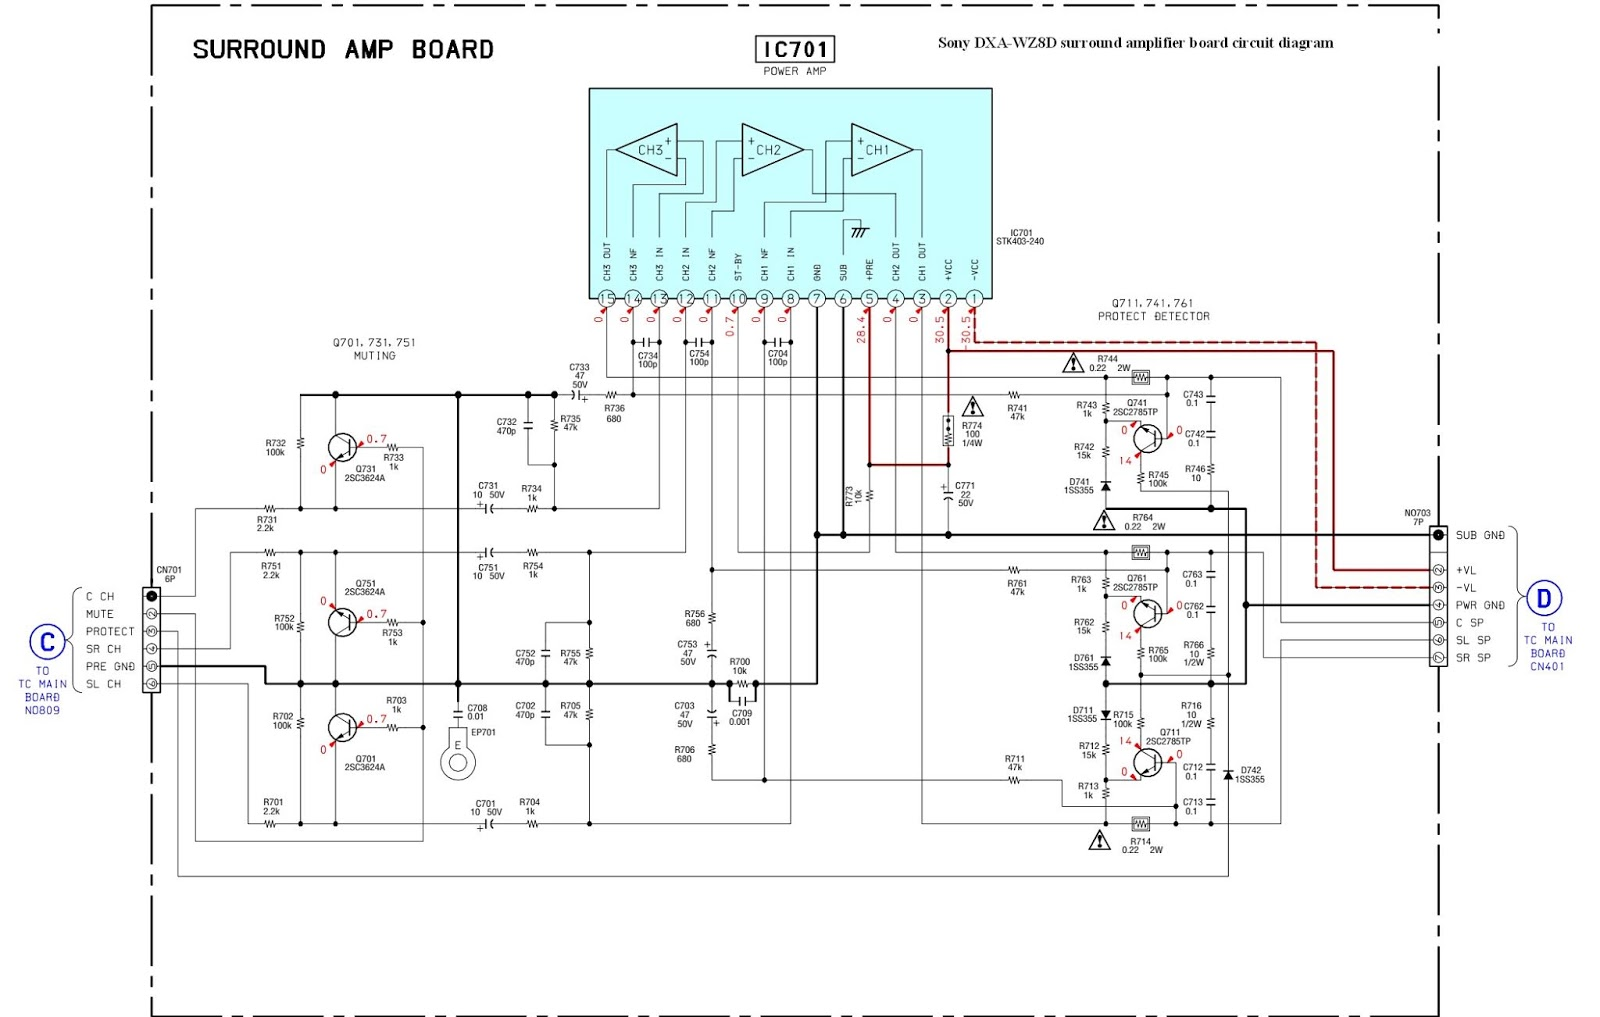 Dxa C Wiring Diagram Content Resource Of Basic Electrical Sony Wz8d Deck And Amplifier Schematic Circuit Rh Homenol Blogspot Com Diagrams Automotive